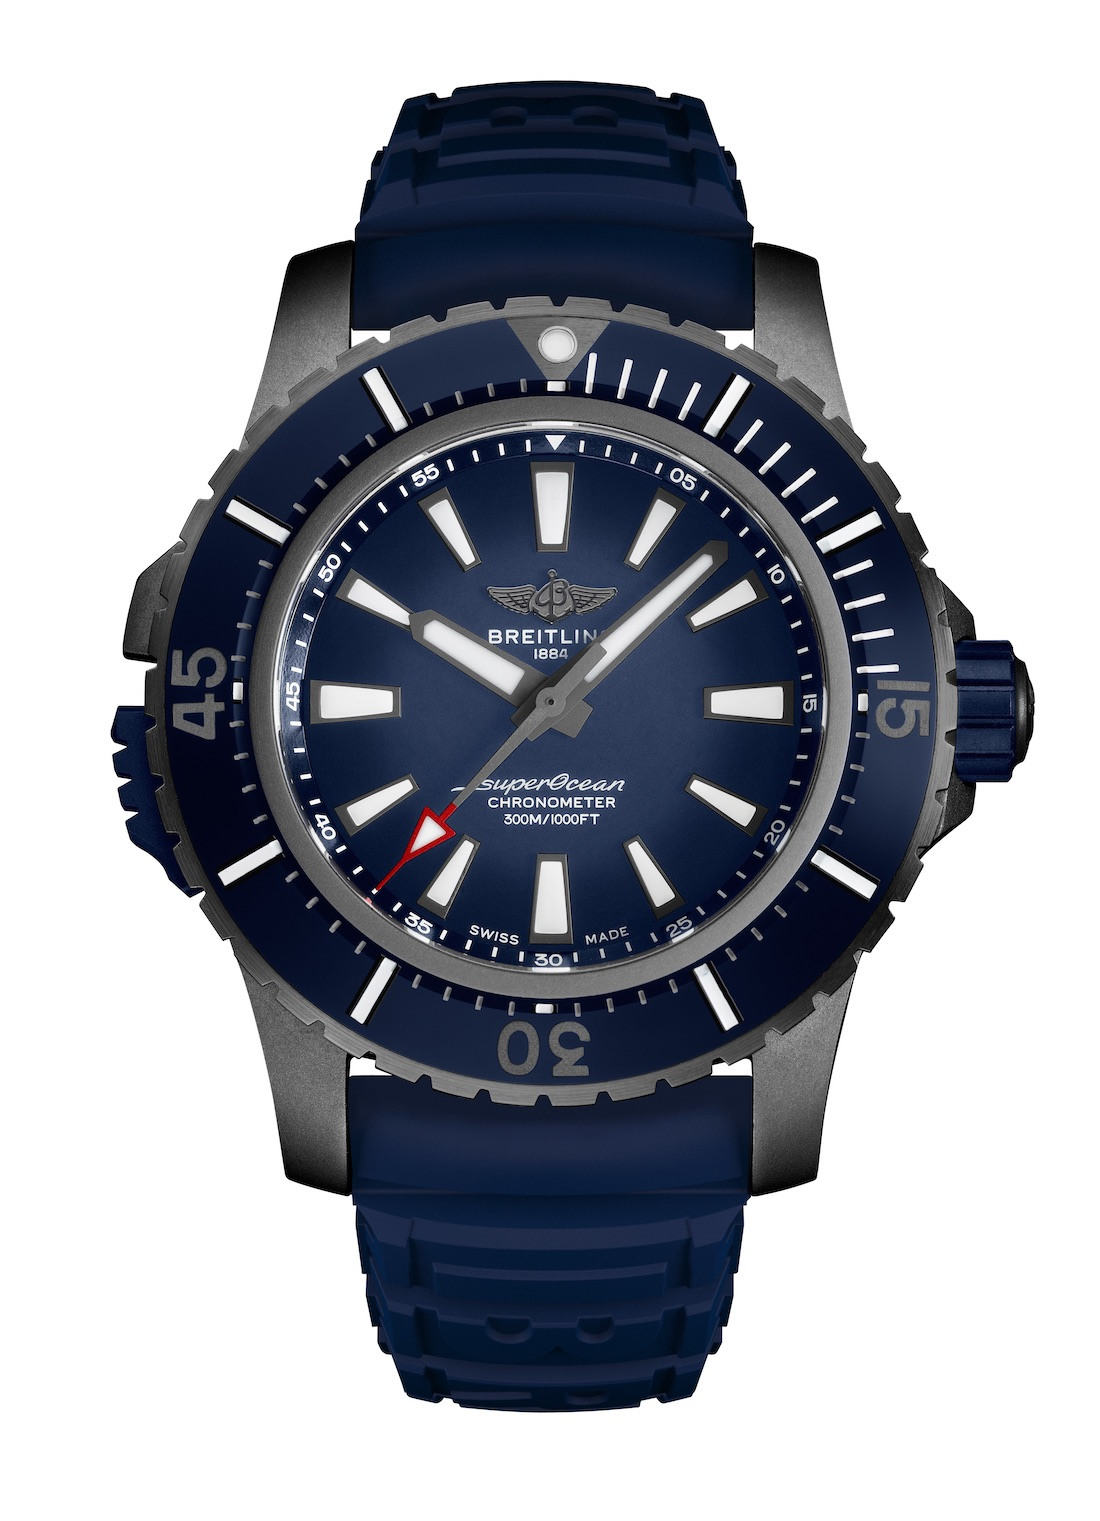 02_Superocean 48 in black titanium with blue dial and blue vented rubber strap_22883_19-03-19.jpg